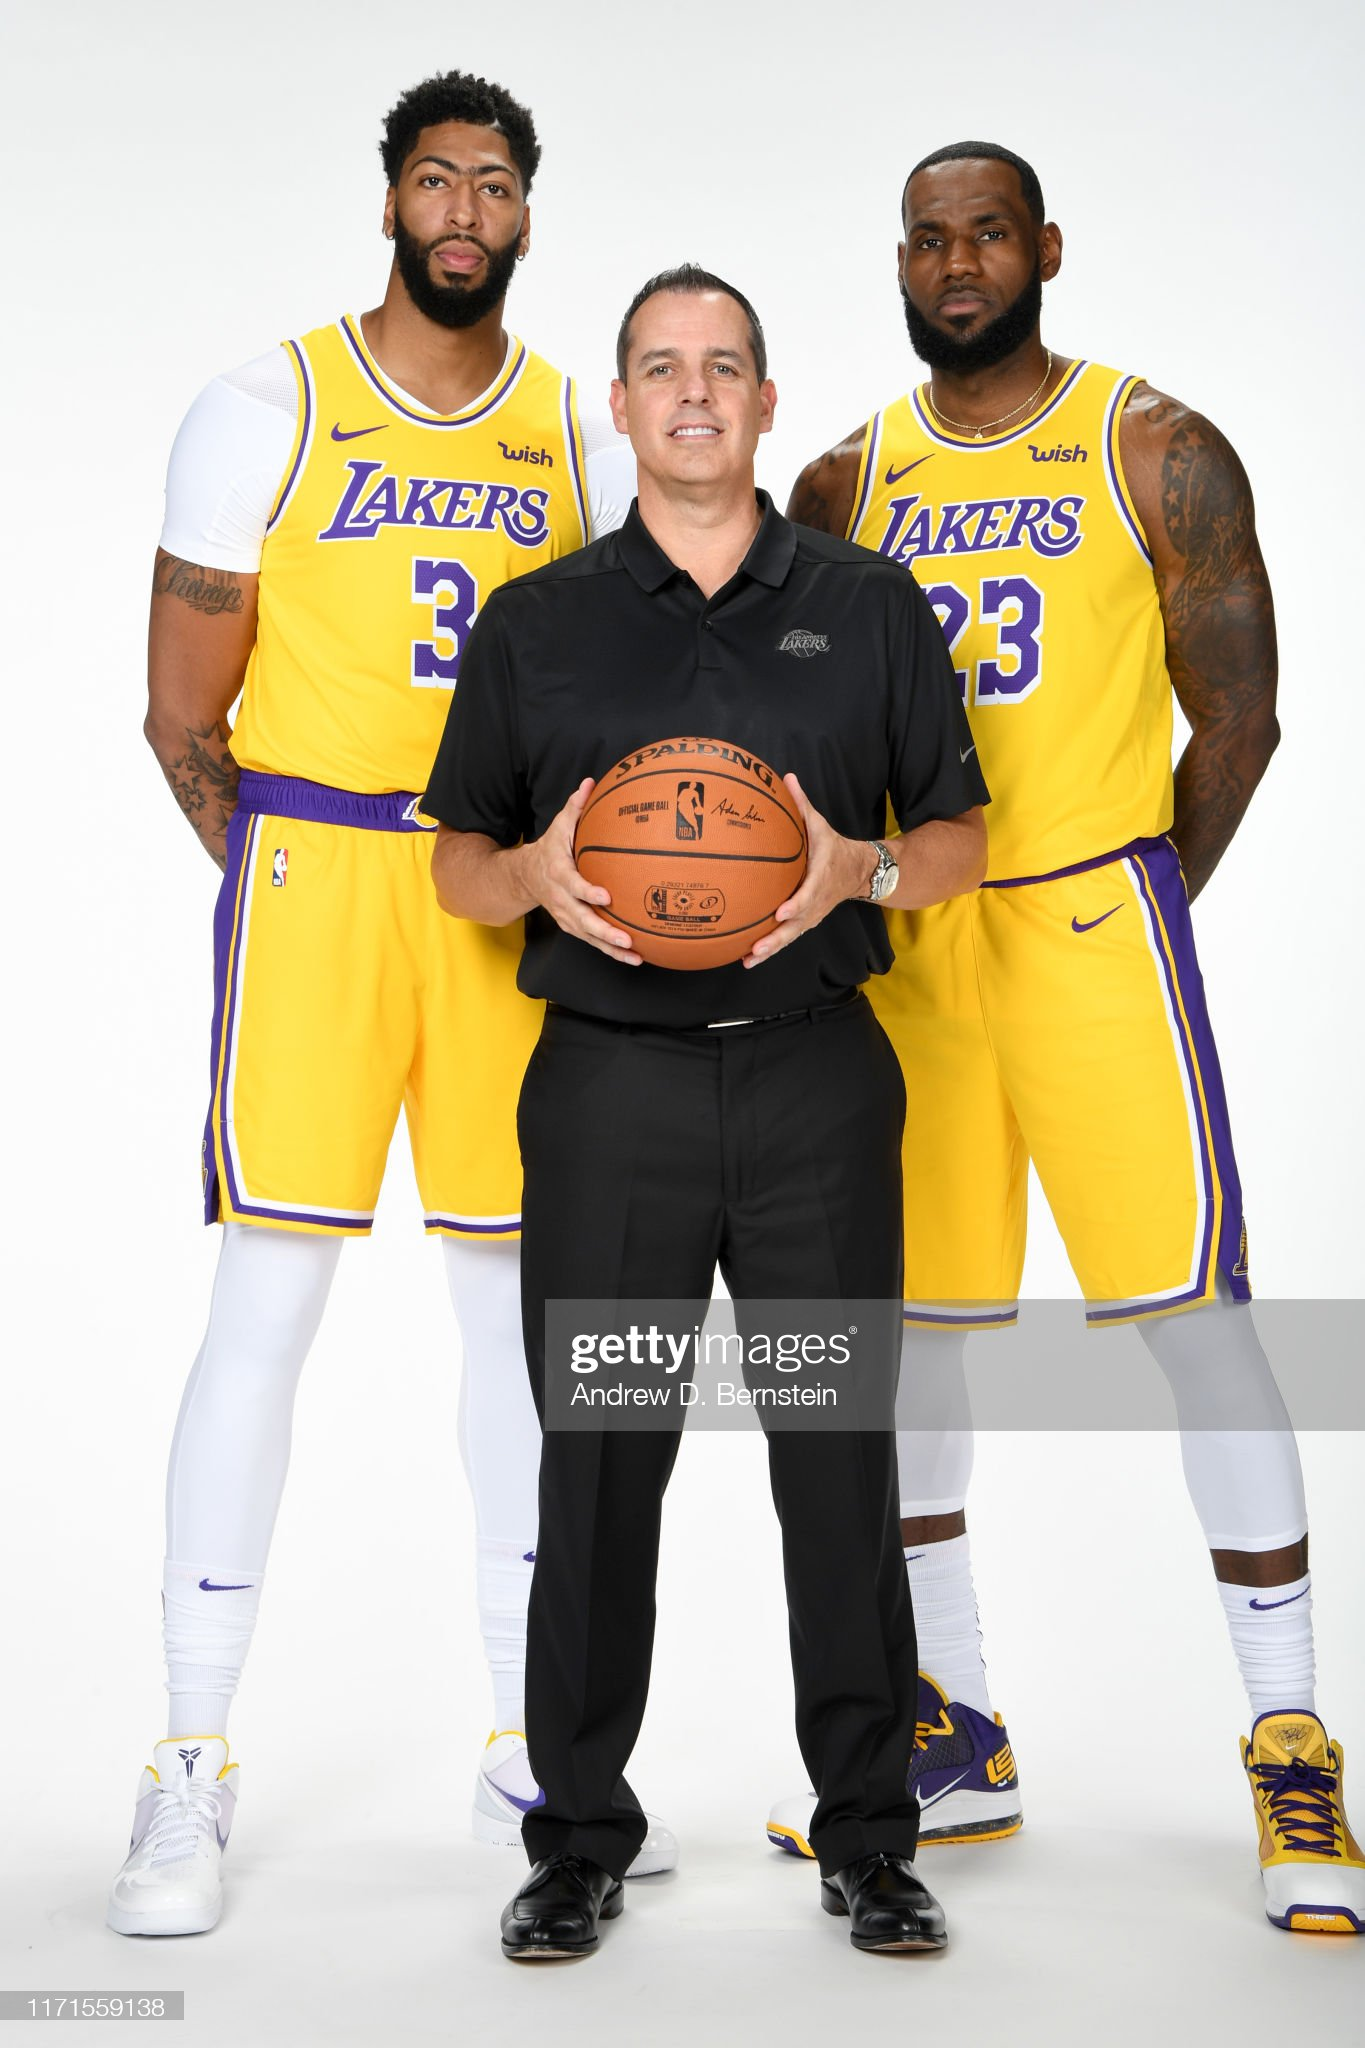 ¿Cuánto mide LeBron James? - Altura - Real height Anthony-davis-head-coach-frank-vogel-and-lebron-james-of-the-los-picture-id1171559138?s=2048x2048